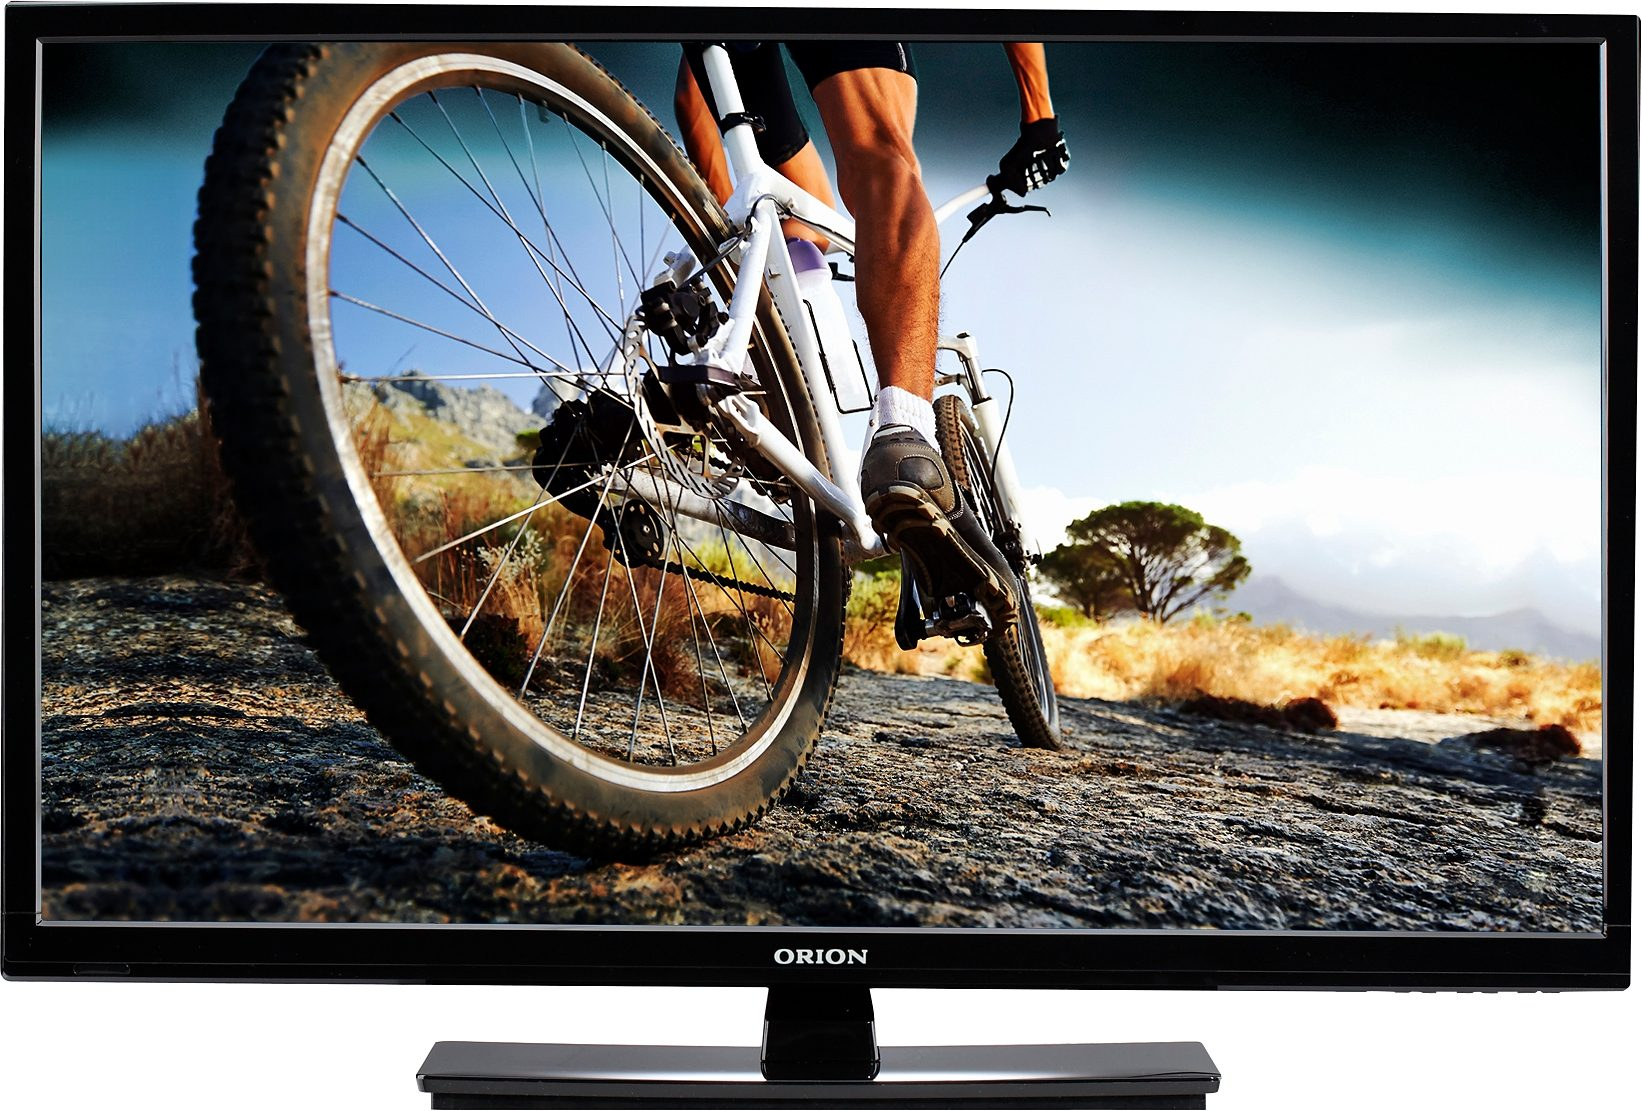 Orion CLB28B560S, LED Fernseher, 70 cm (28 Zoll), HD-ready 720p